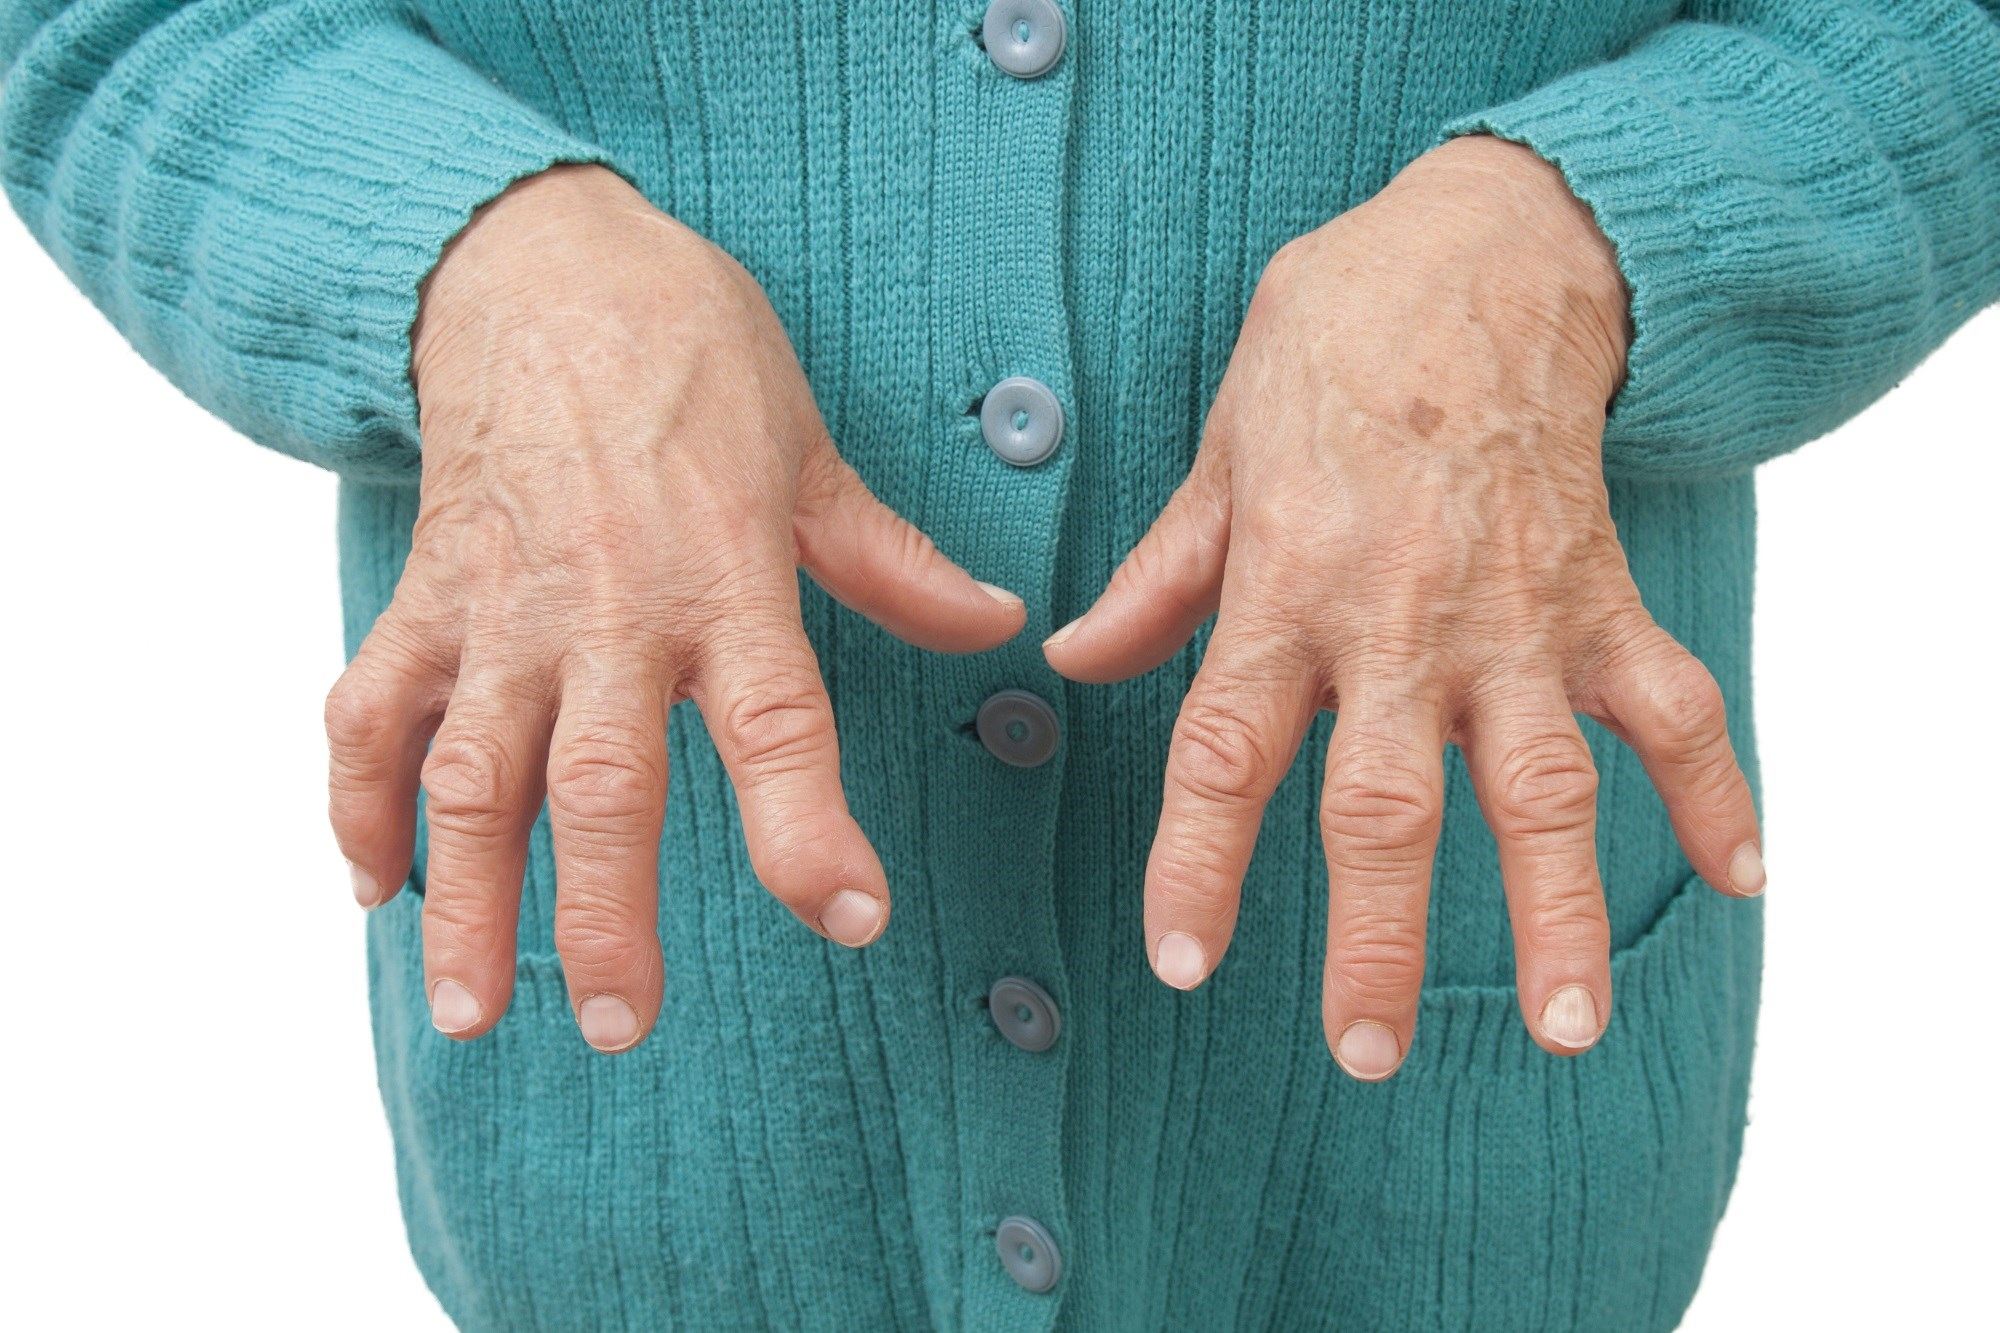 Clinical, Radiographic Benefits of Tofacitinib Sustained for 2 Years in Rheumatoid Arthritis